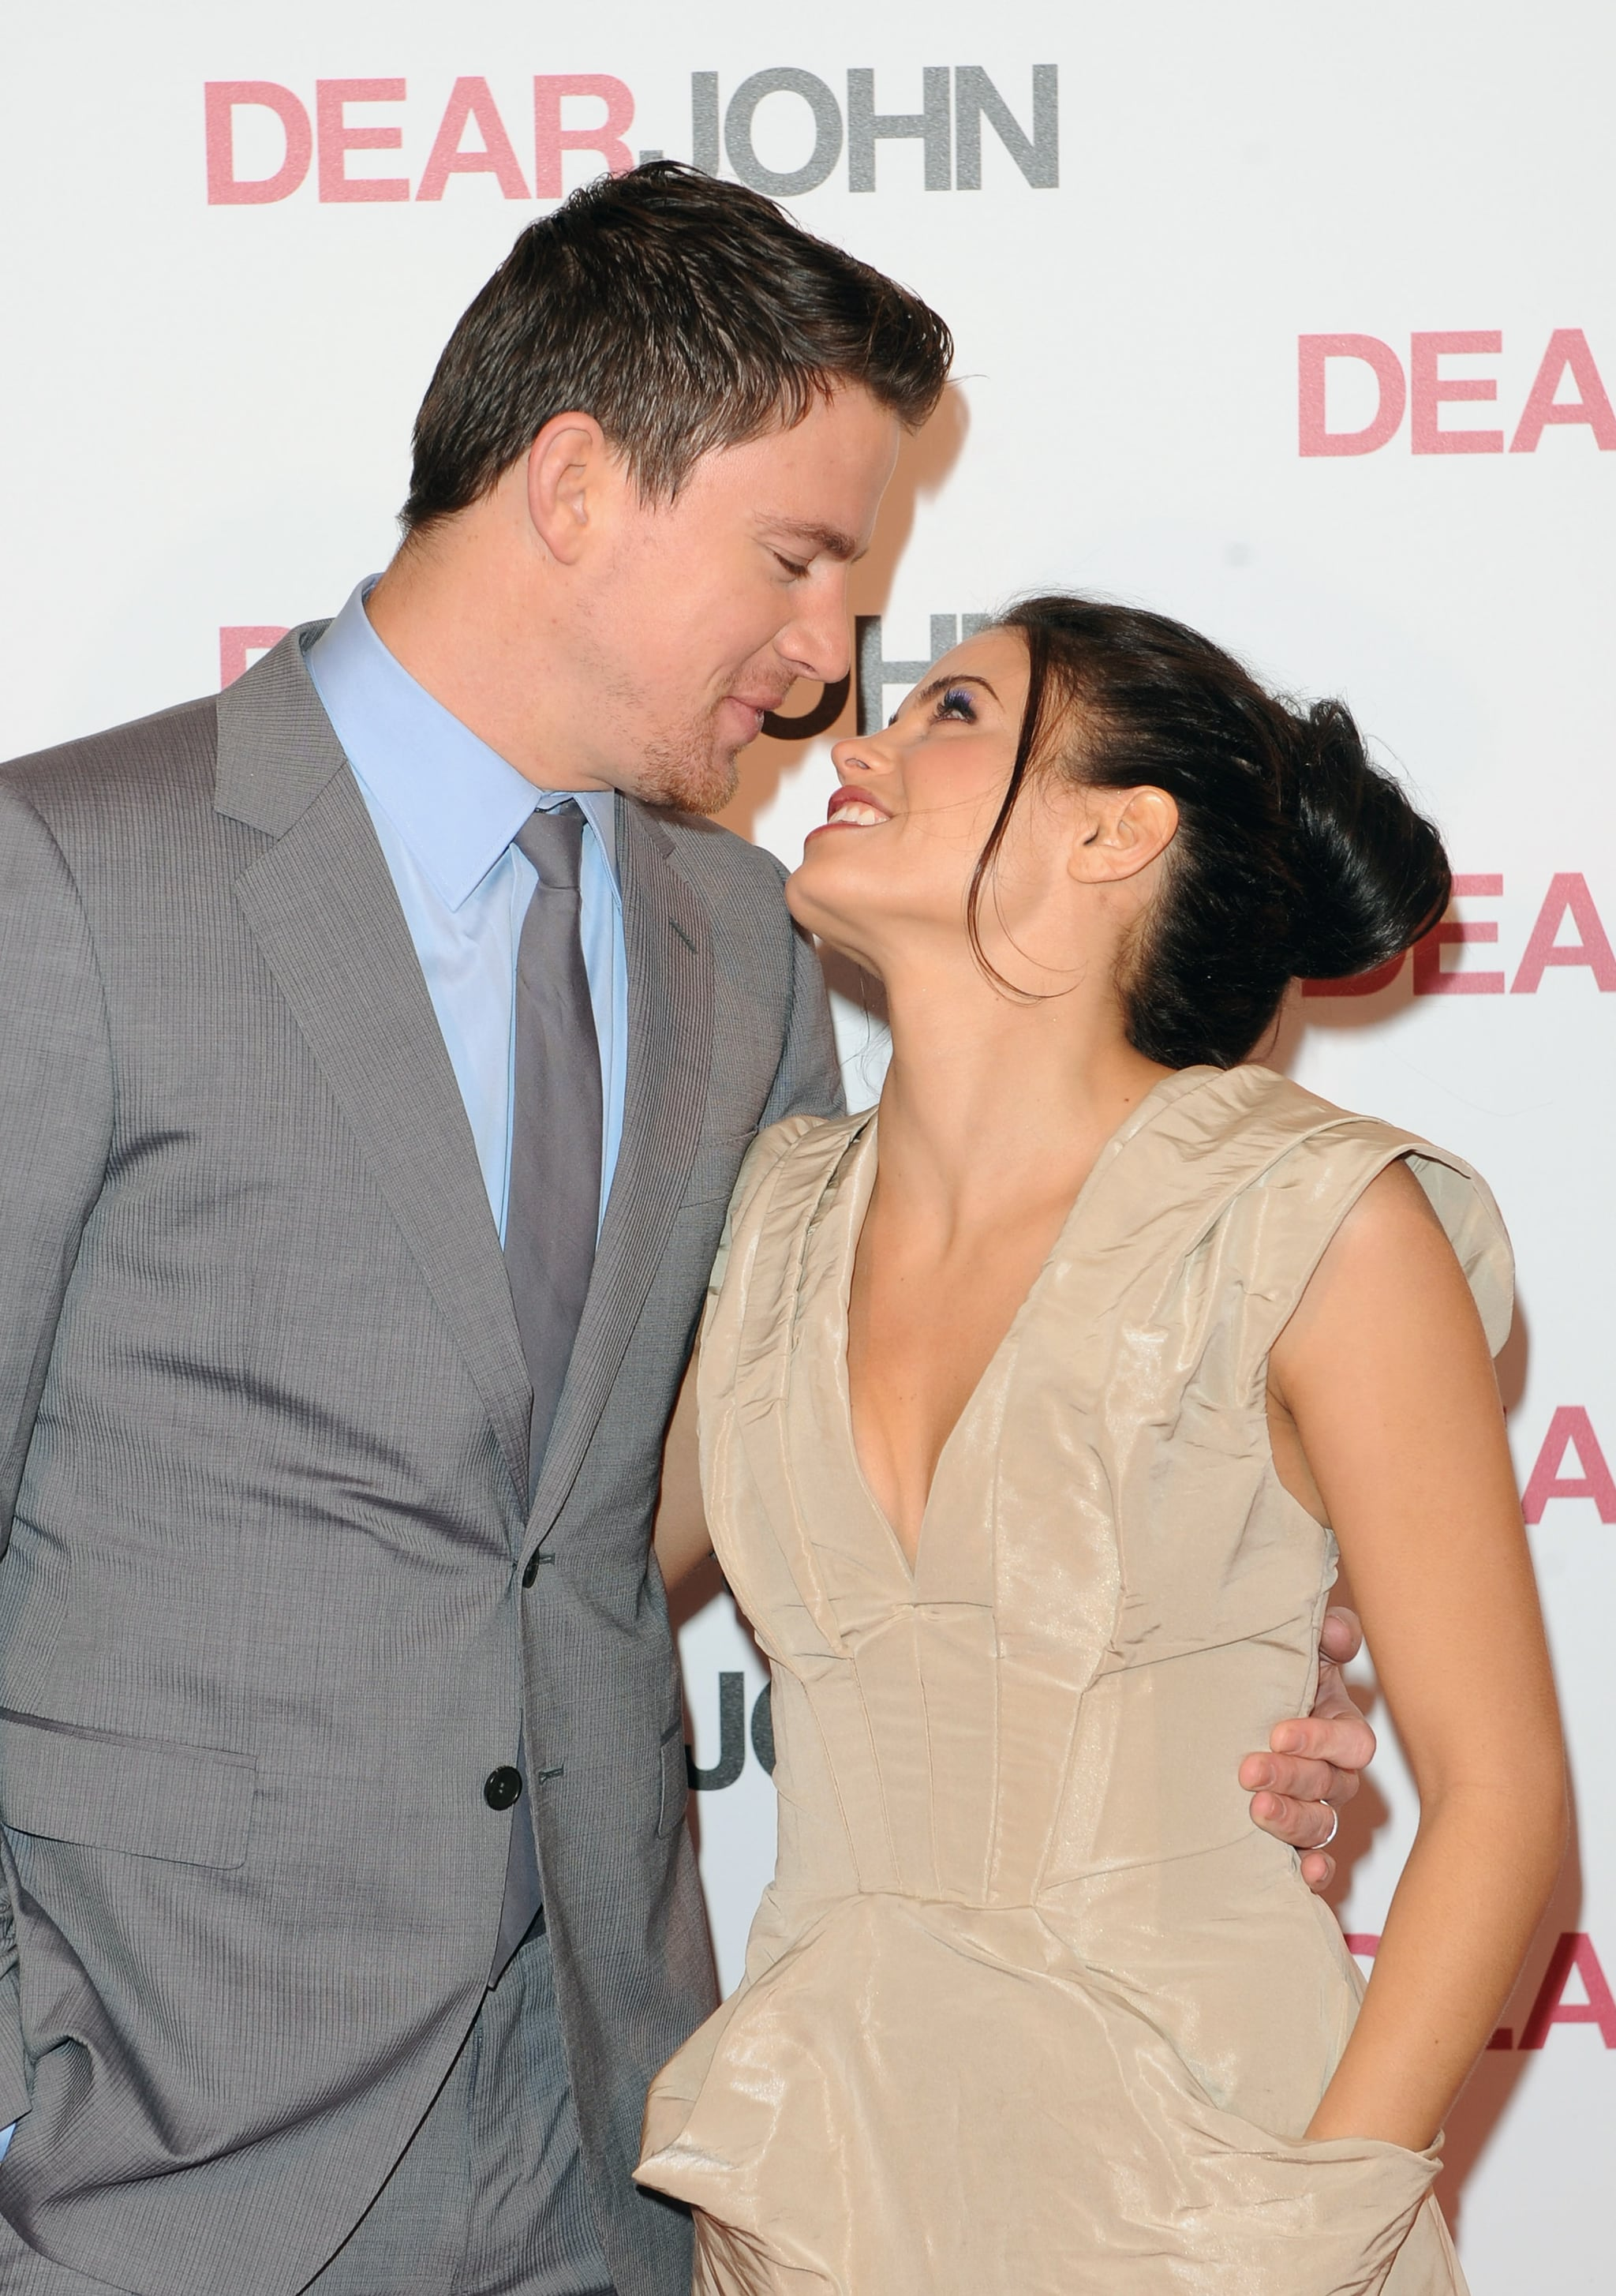 Channing and Jenna only had eyes for each other at the March 2010 premiere of Dear John in London.